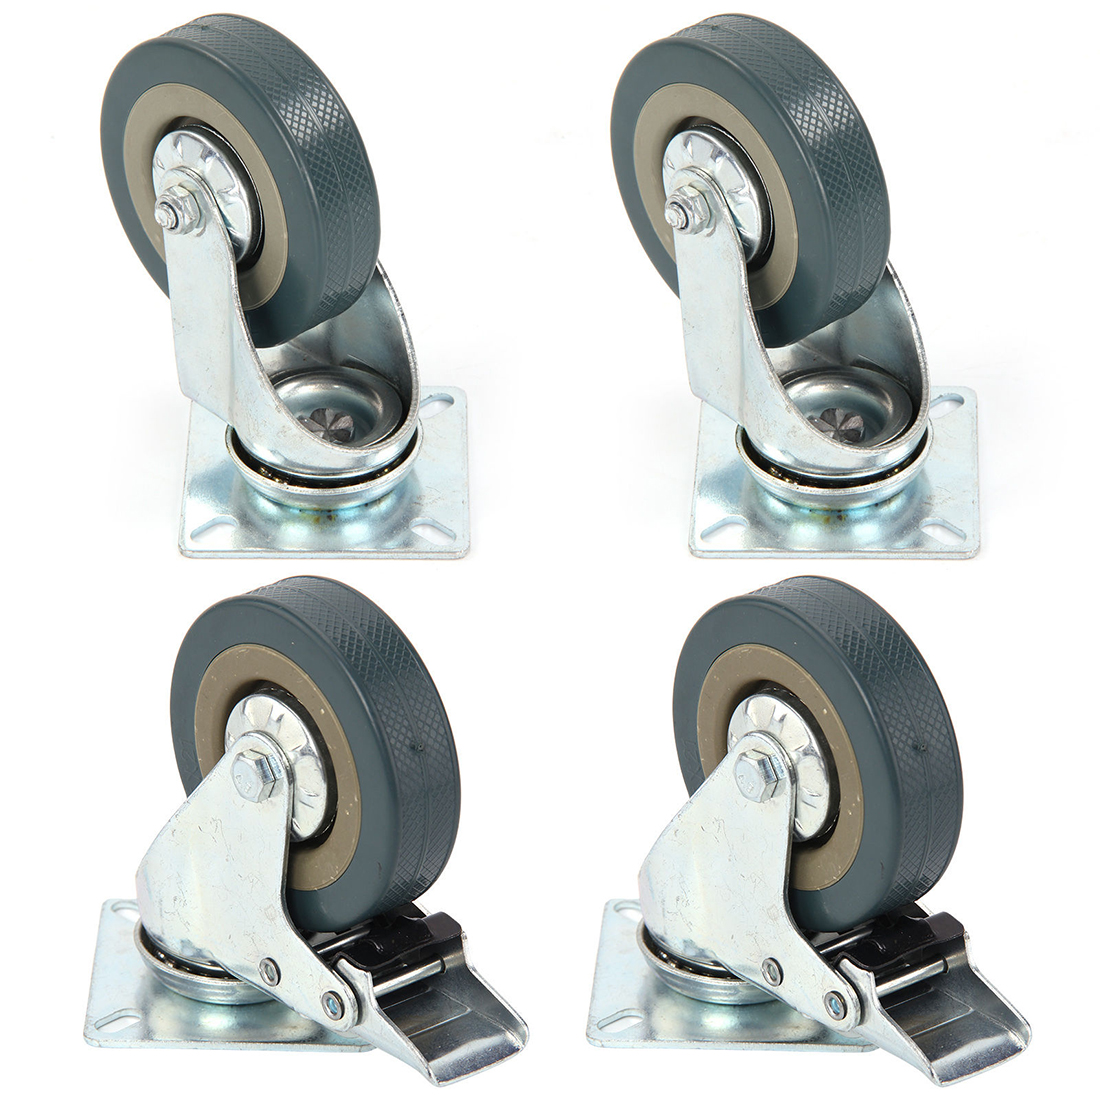 Set of Heavy Duty 125x27mm Rubber Swivel Castor Wheels Trolley Caster Brake 100KGModel:2 with brake +2without brake ys 138no nc ansi standard heavy duty electric strike size 124 x 32 x 33 mm